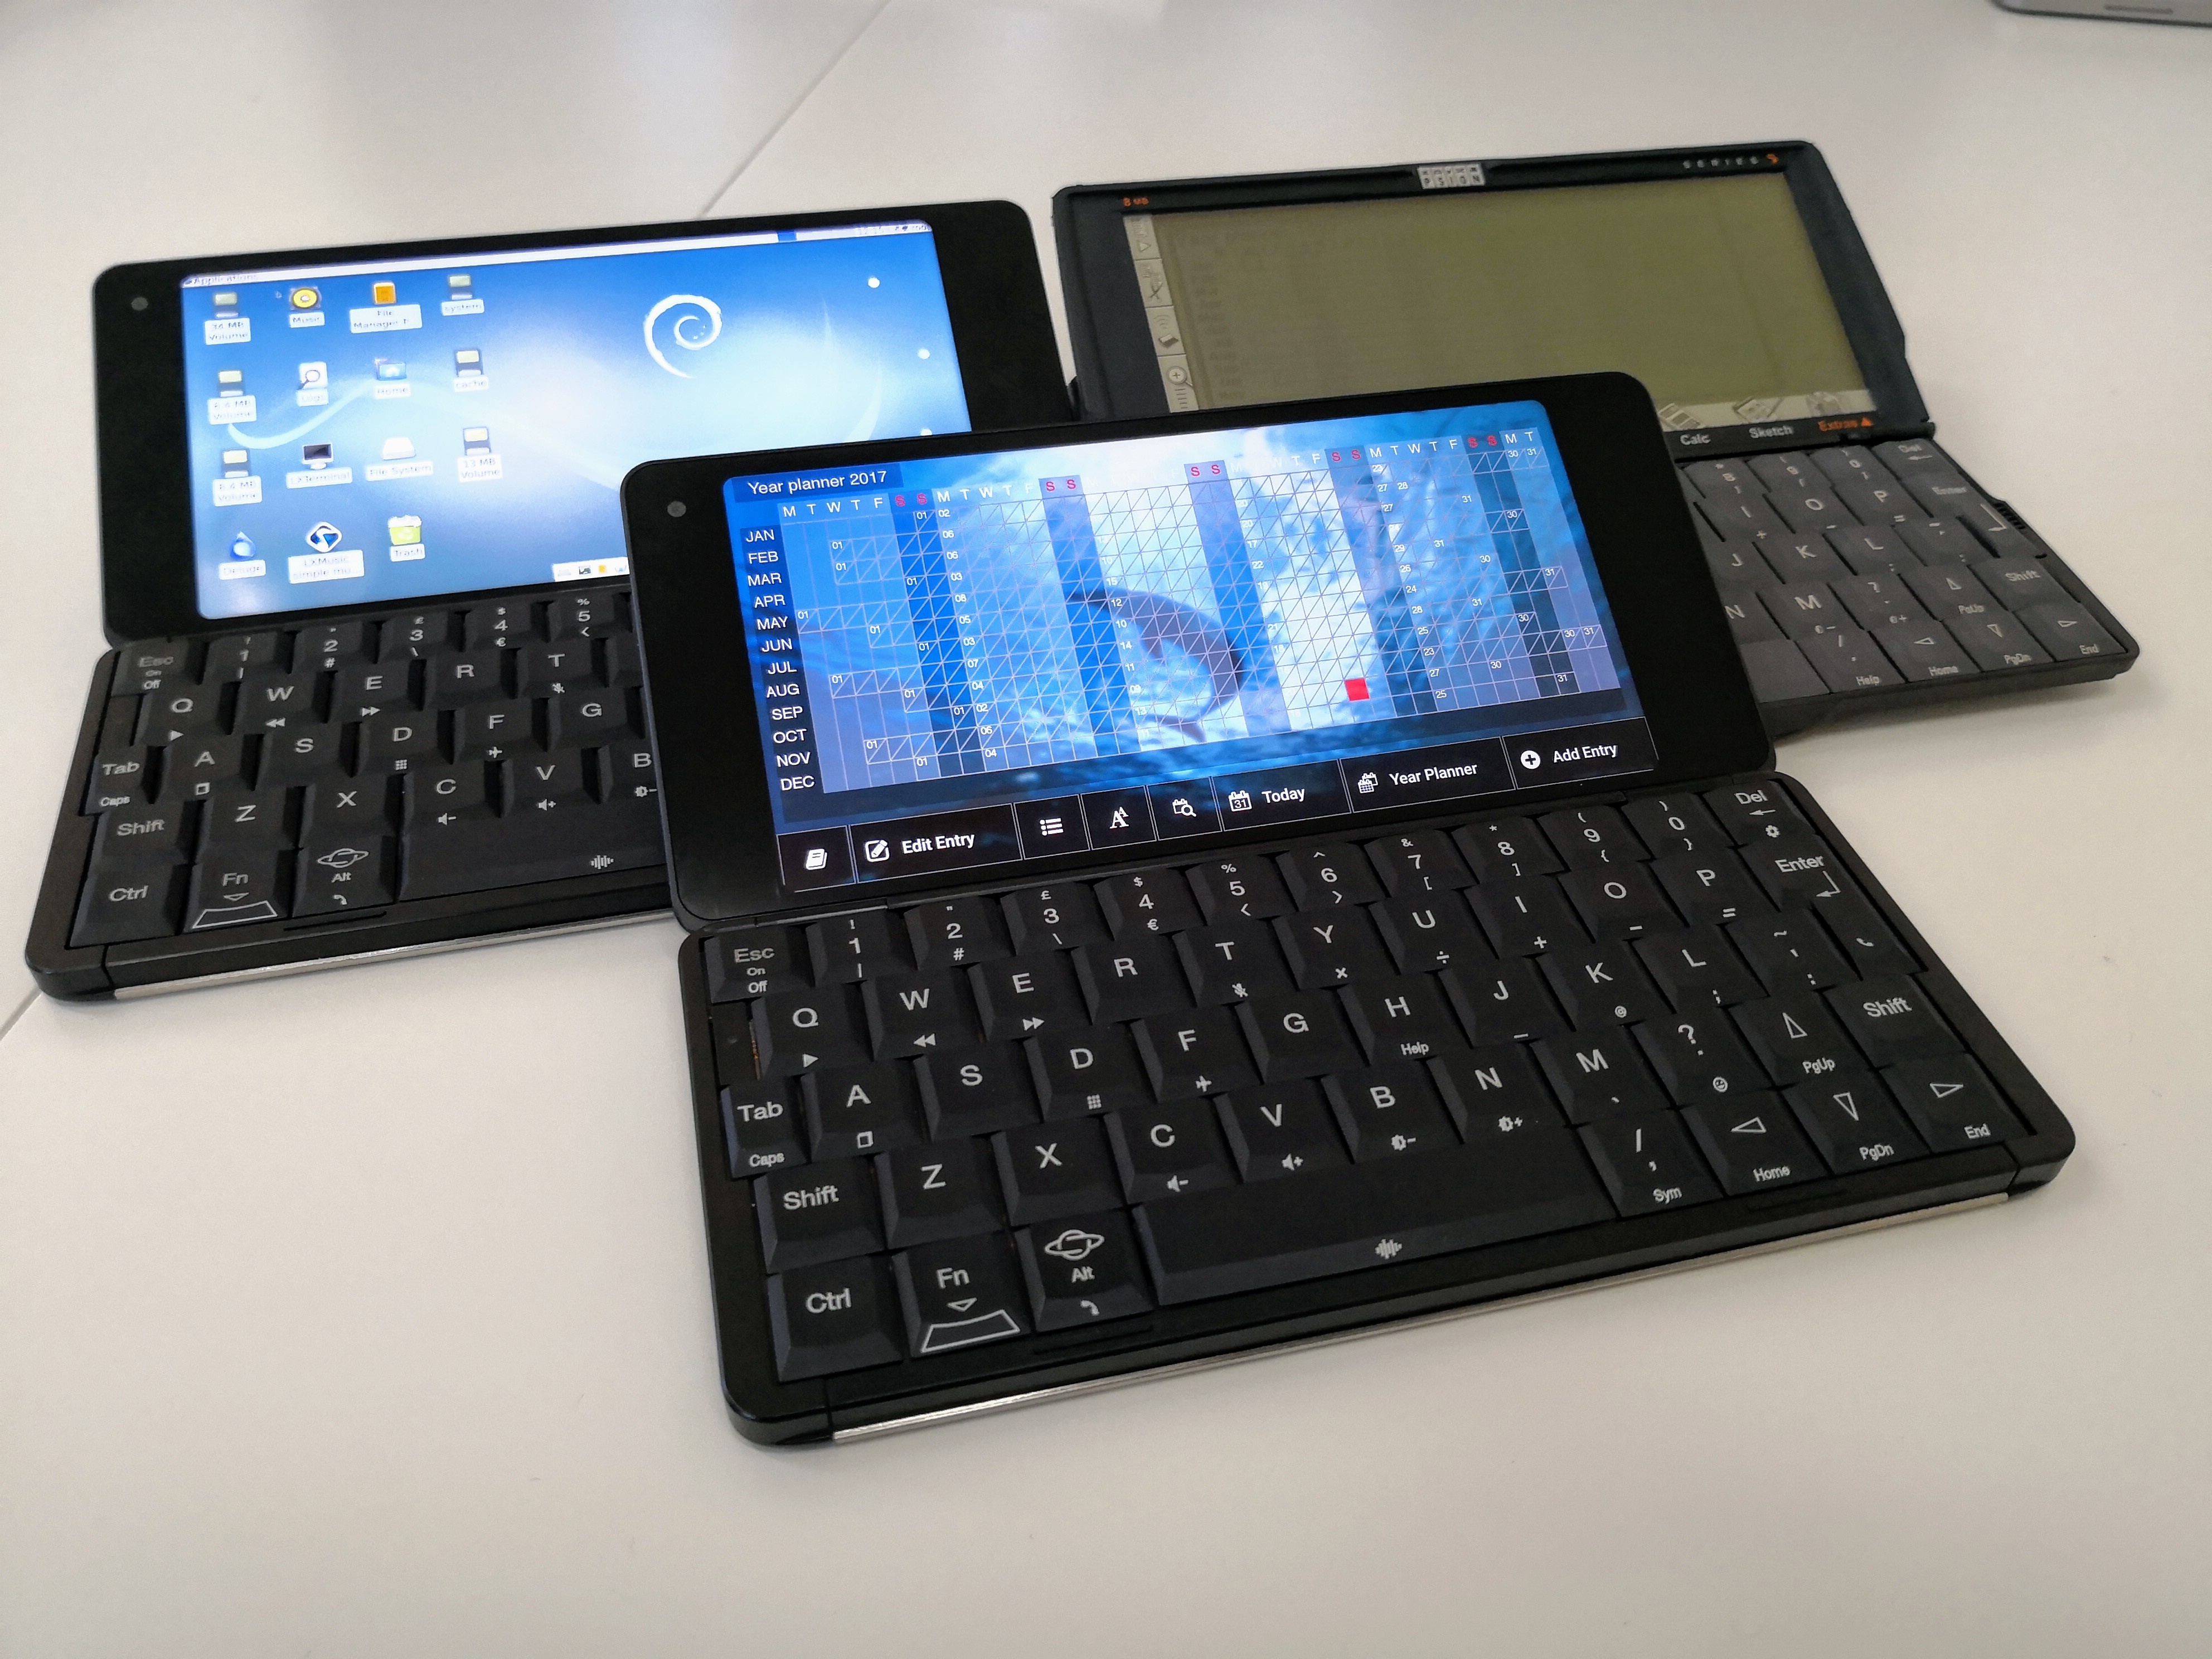 Gemini PDA: 20 years on, meet the all new Psion Series 5 ...